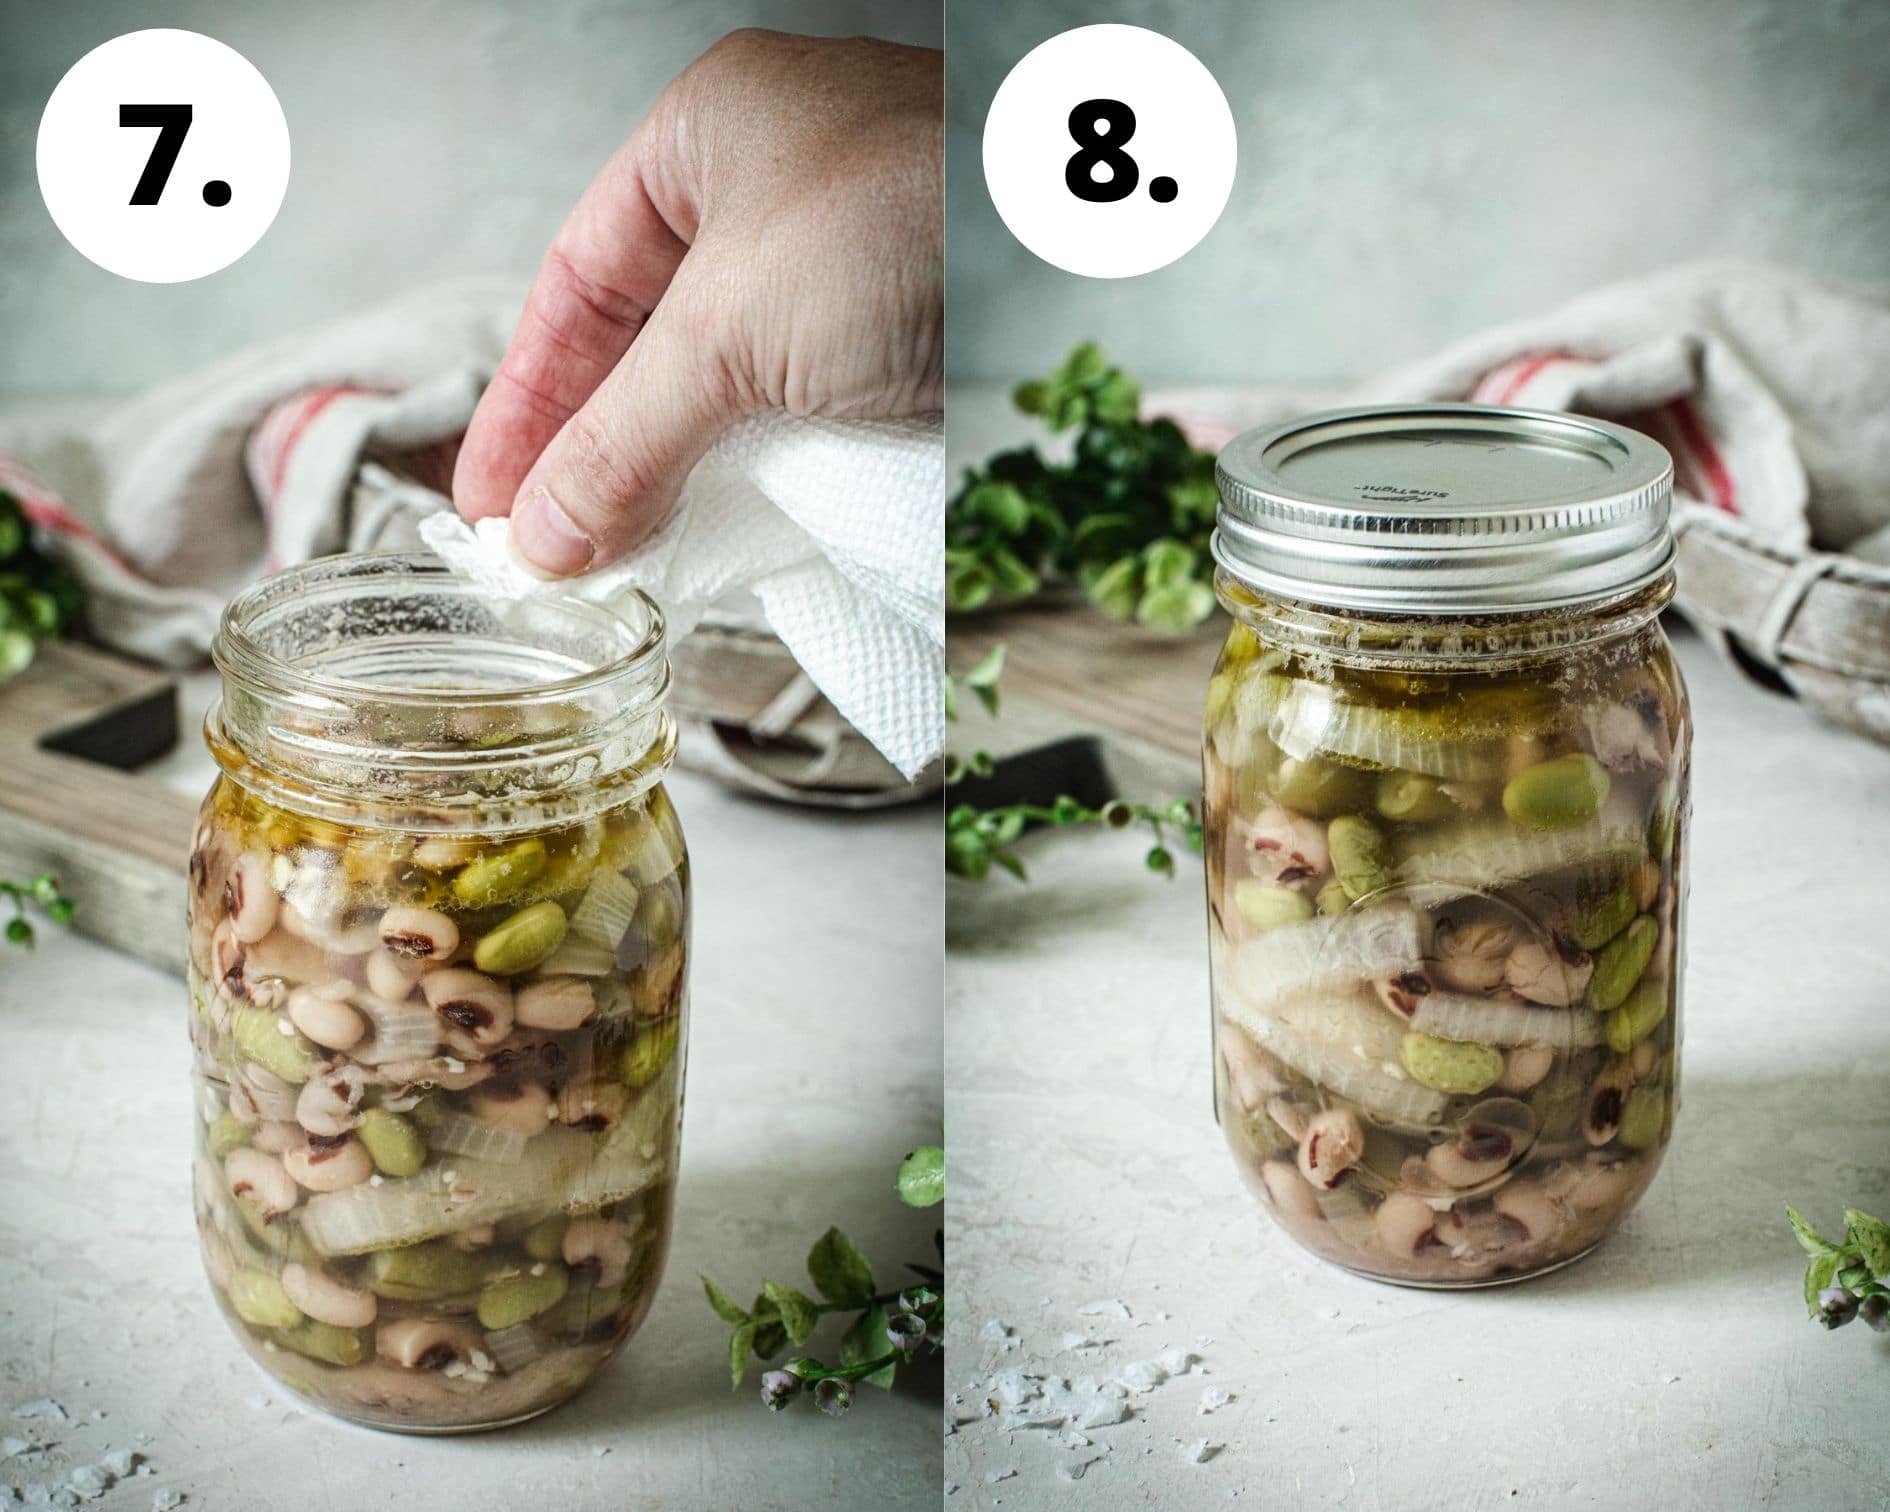 Canning process steps for three bean salad steps 7 and 8.